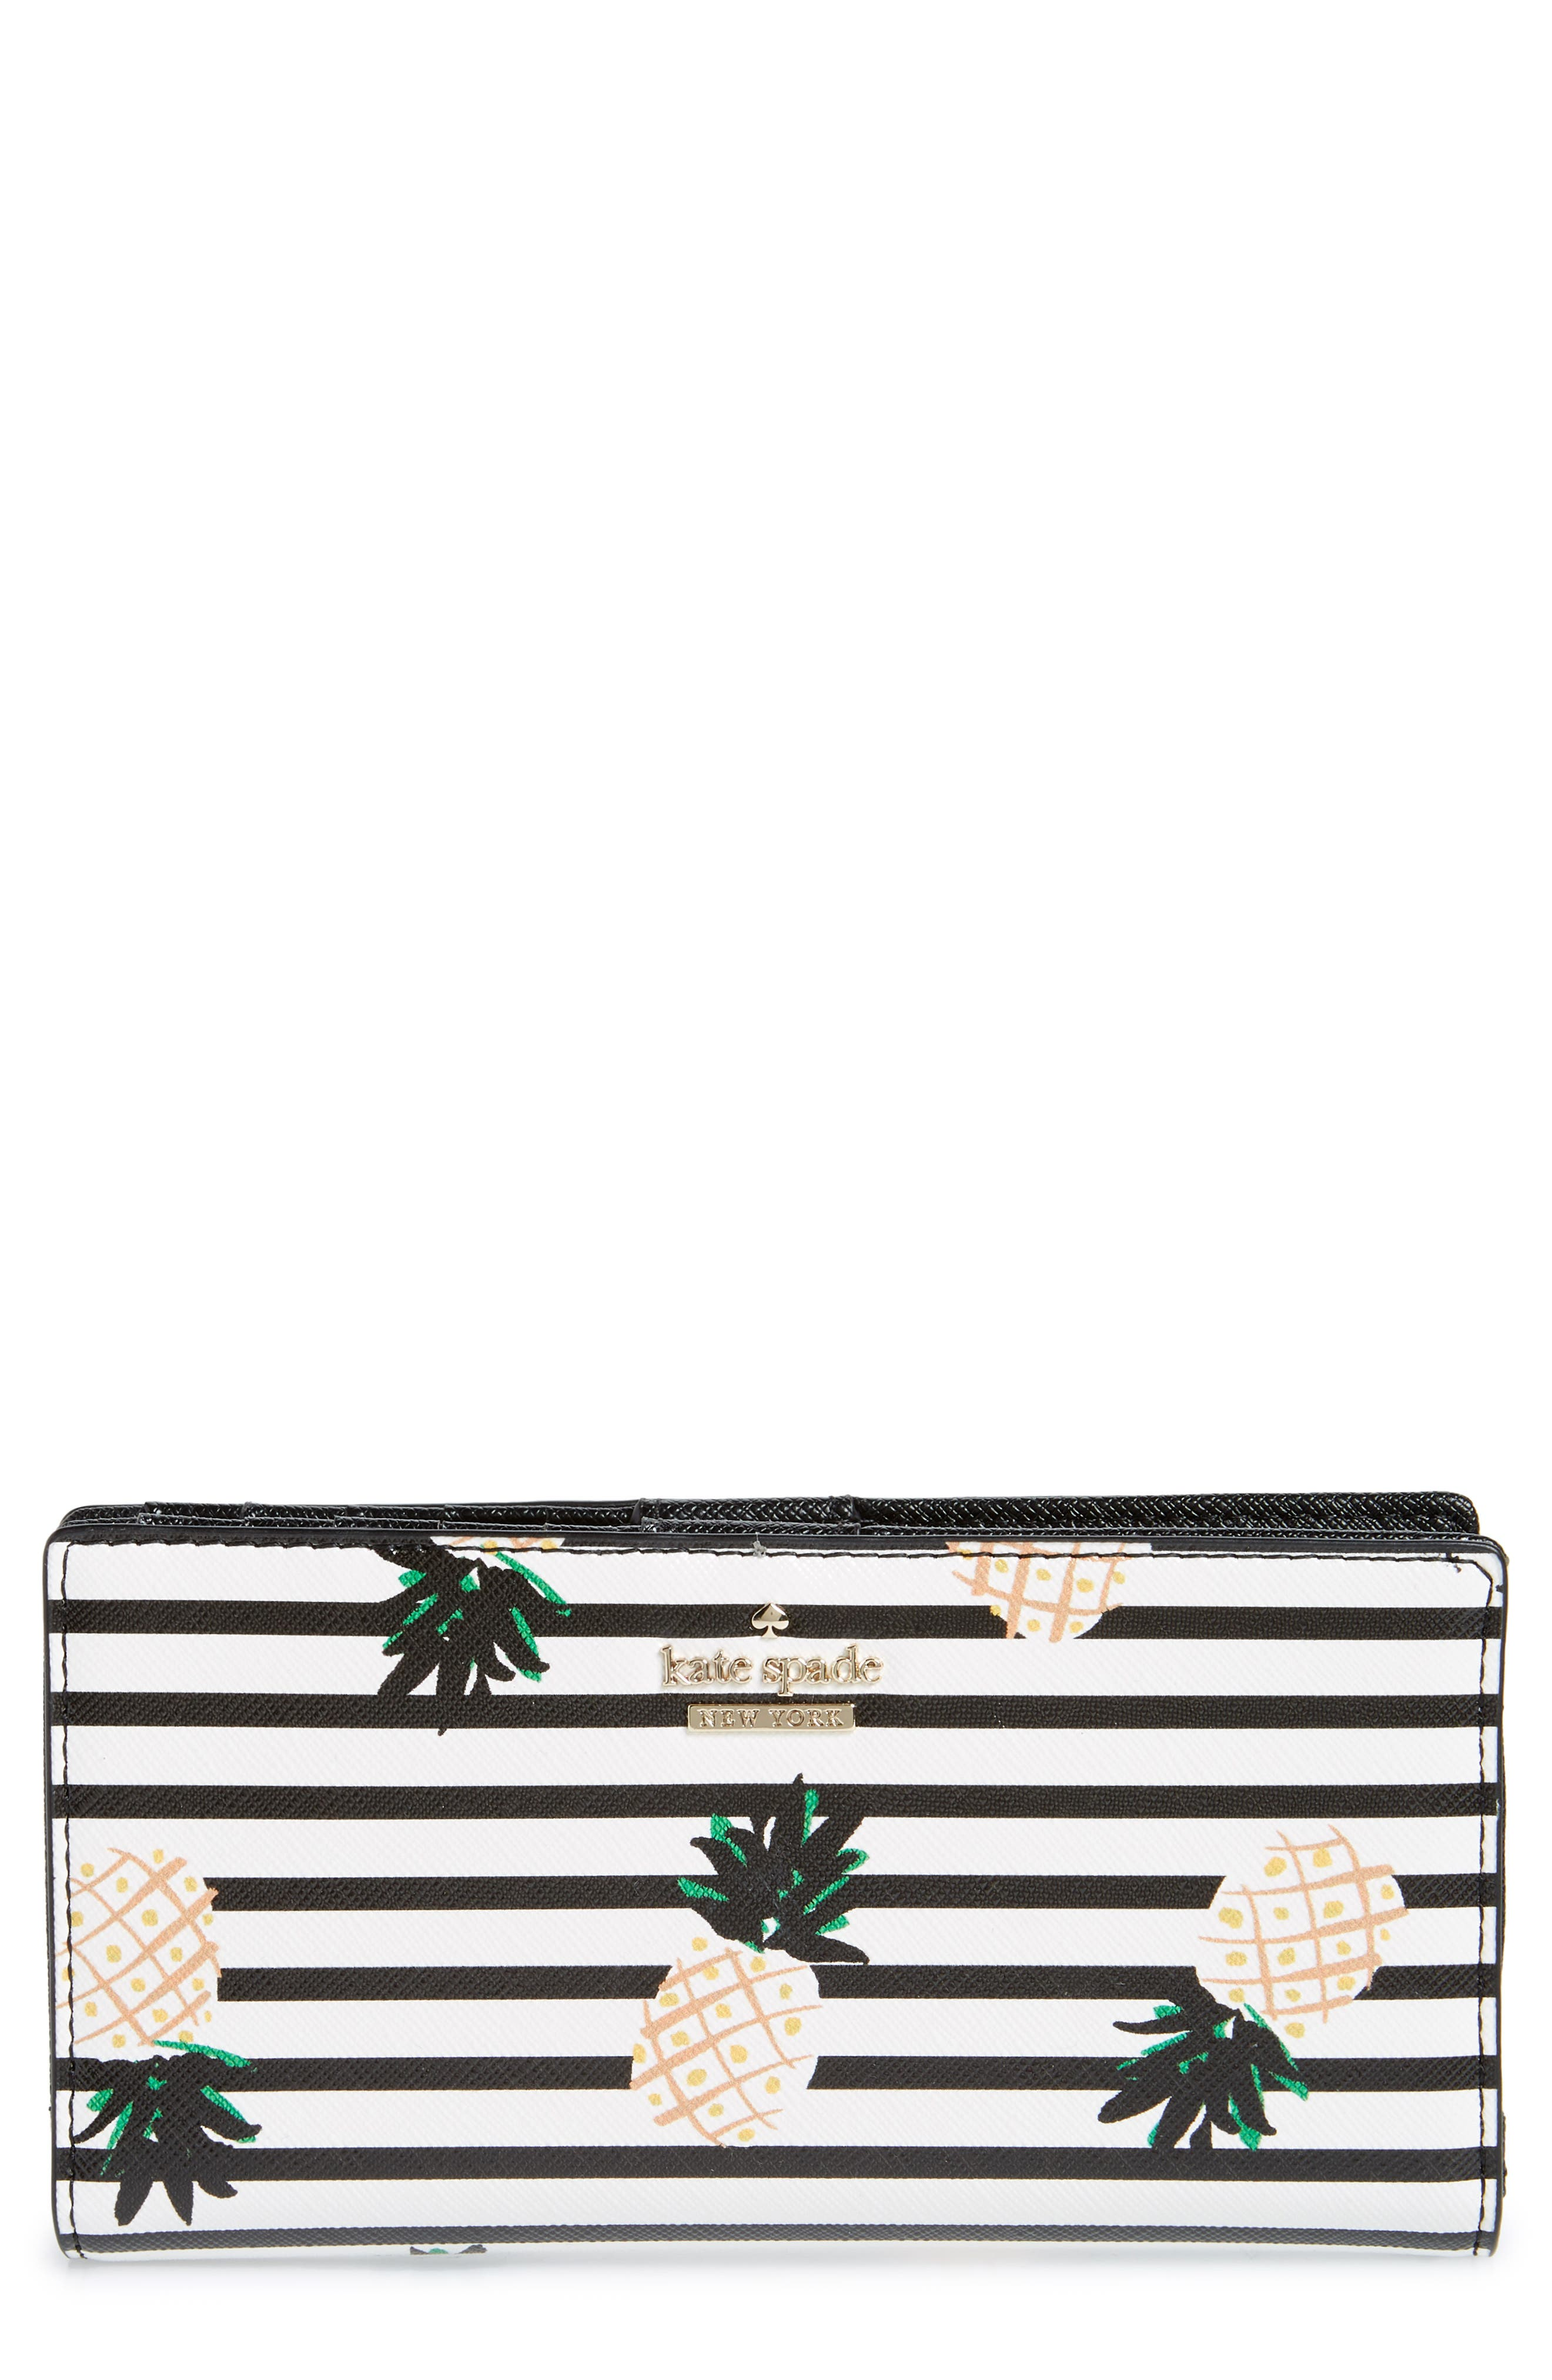 KATE SPADE NEW YORK cameron street - stacy pineapples glazed canvas wallet, Main, color, 700